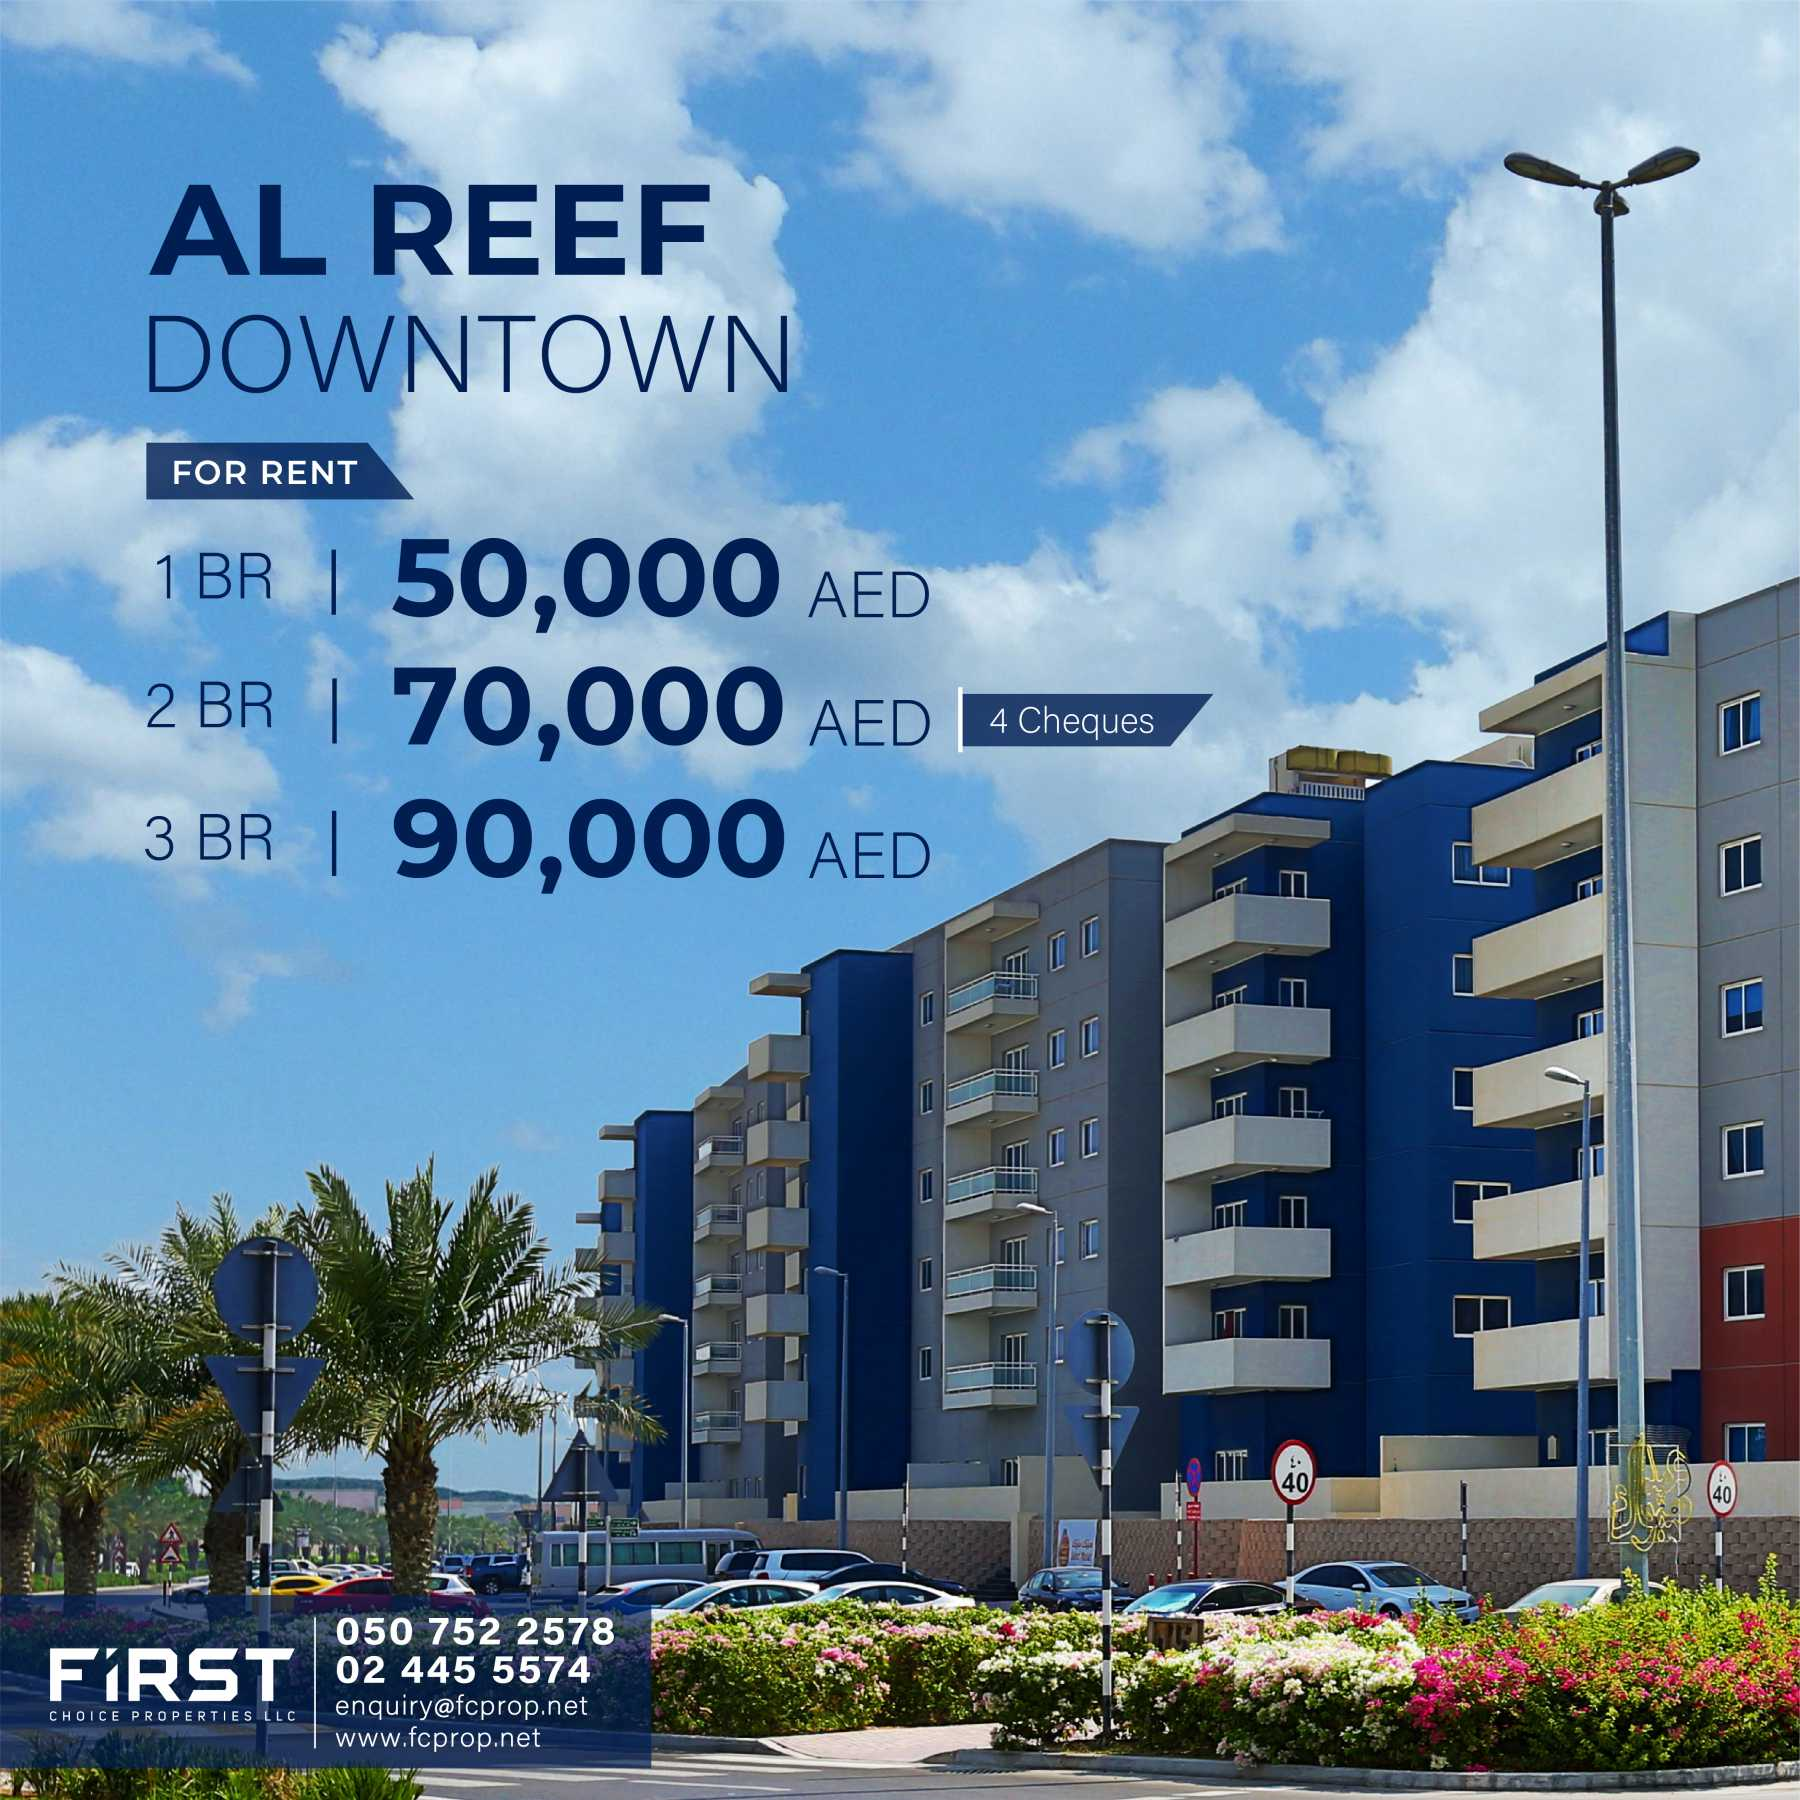 Al Reef Downtown Ad.jpg